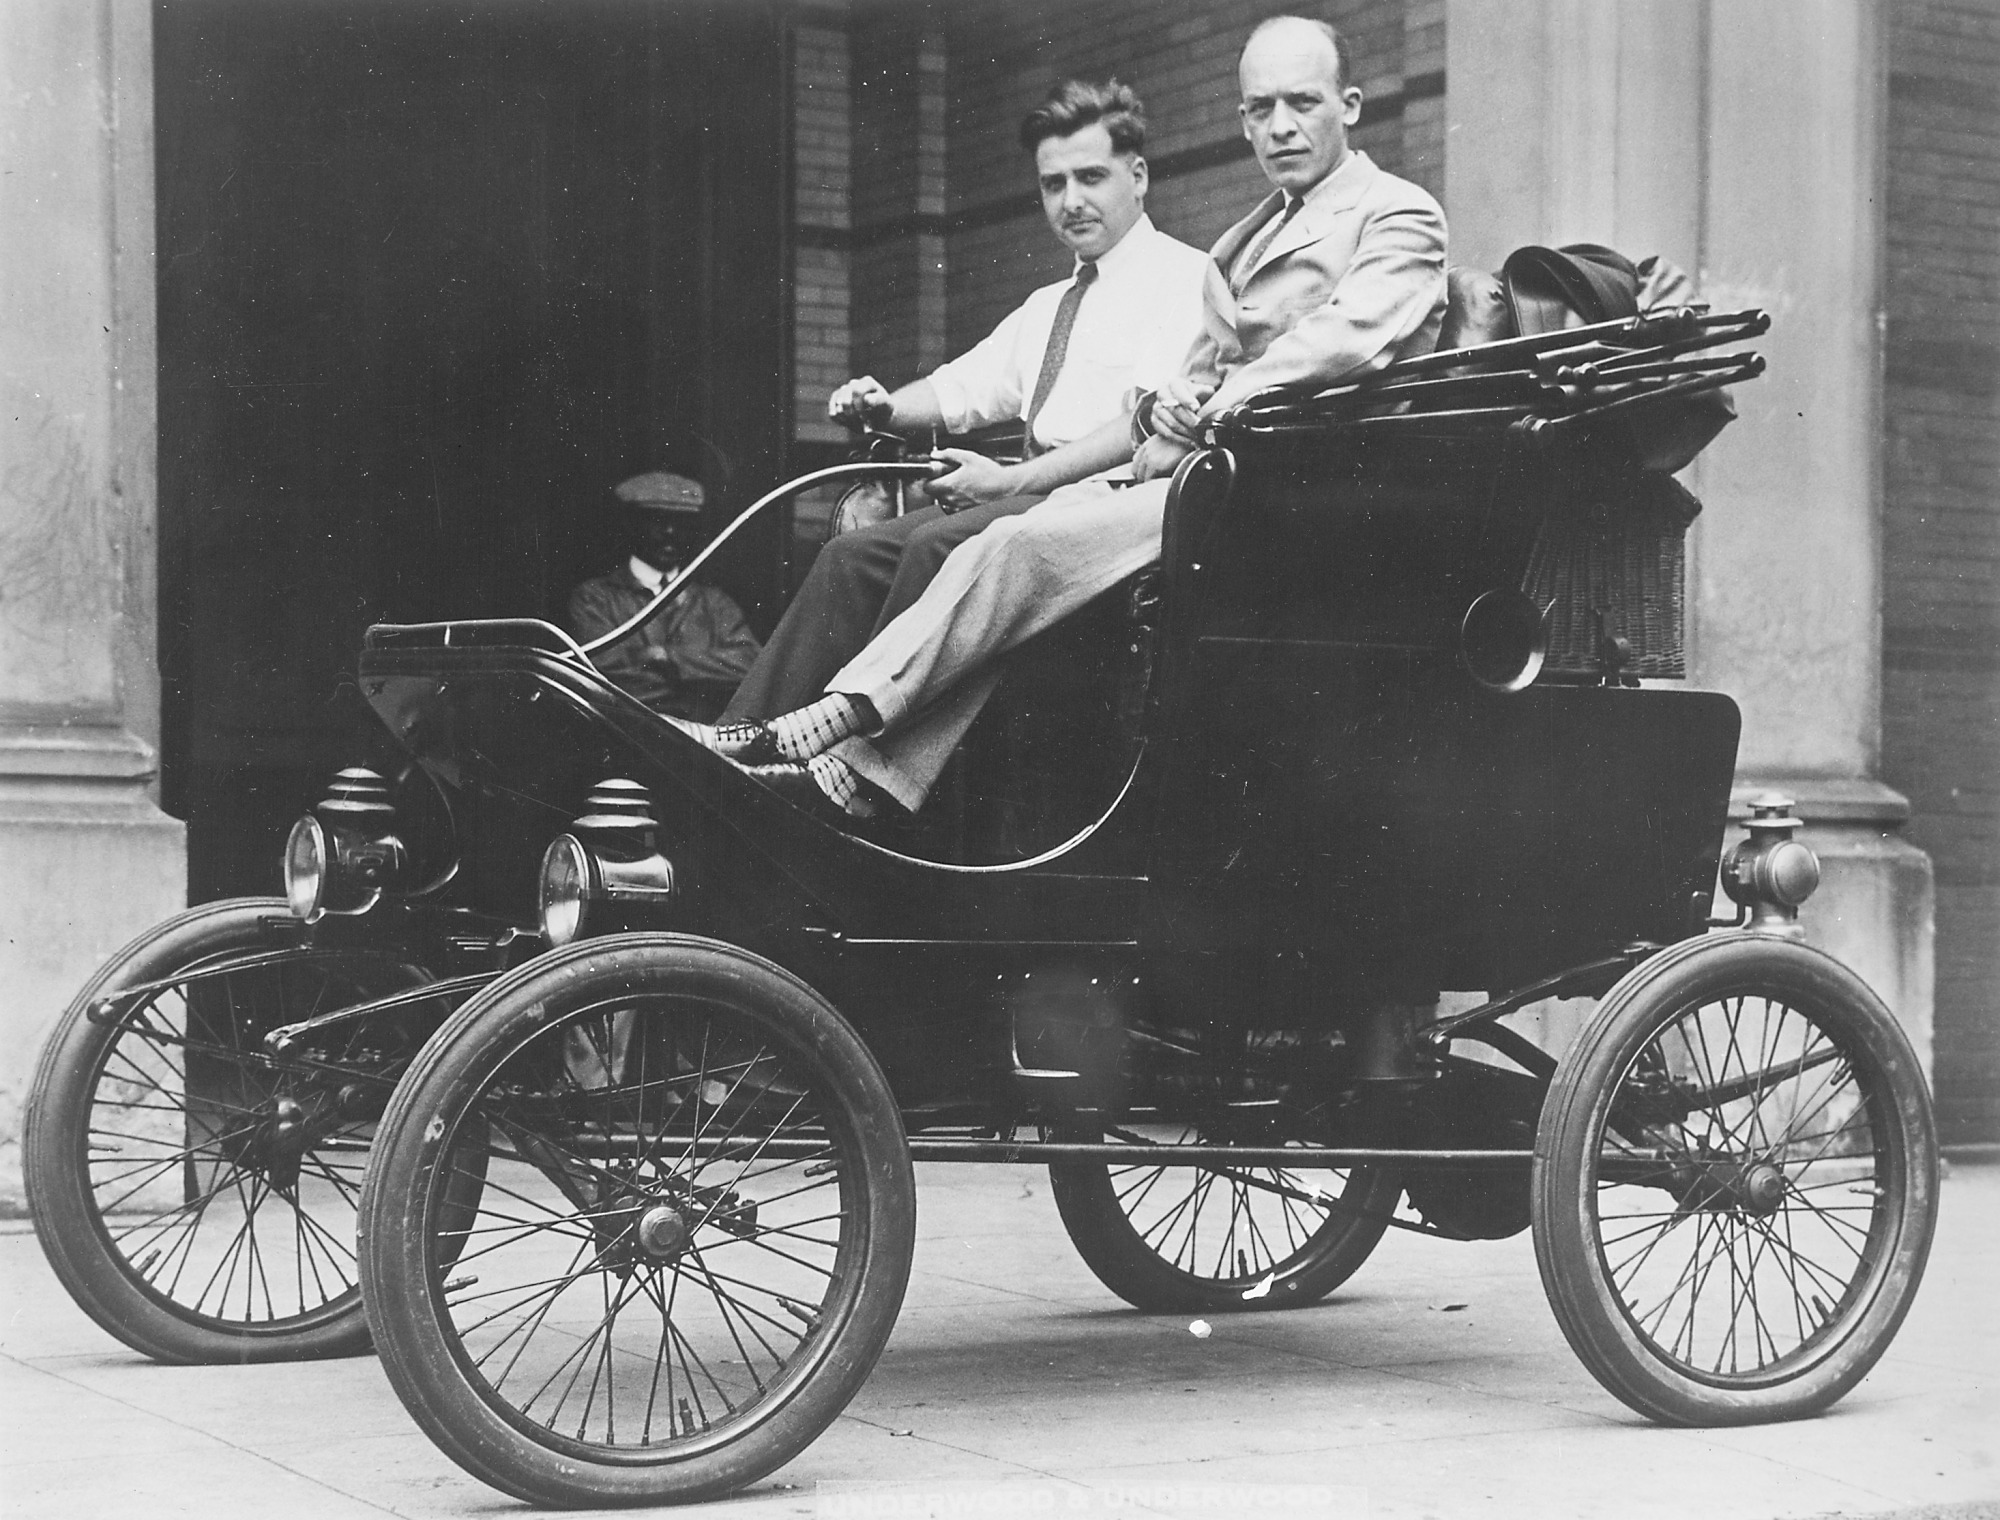 Paul E. Garber (left) poses at the tiller of a White steam automobile